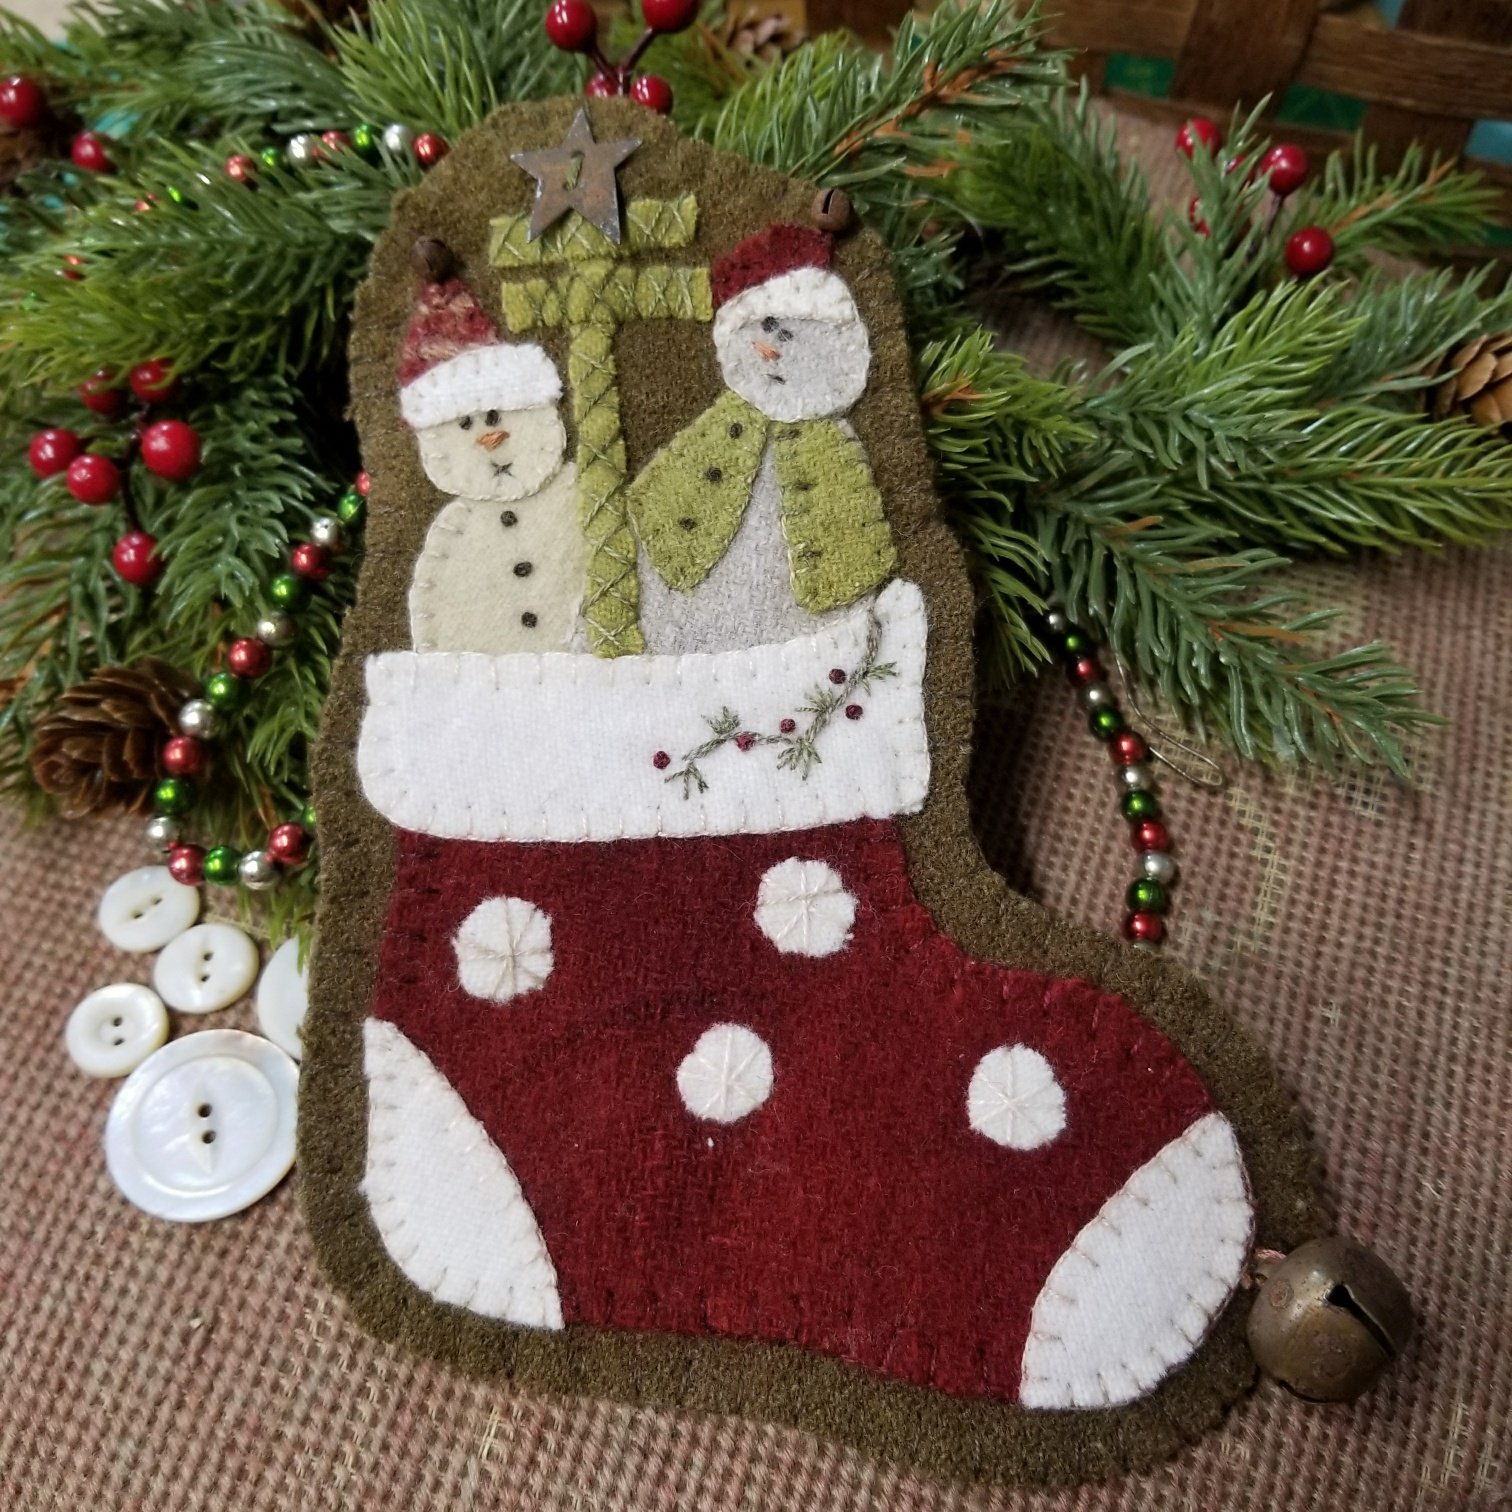 ORNAMENT POLKA DOT STOCKING